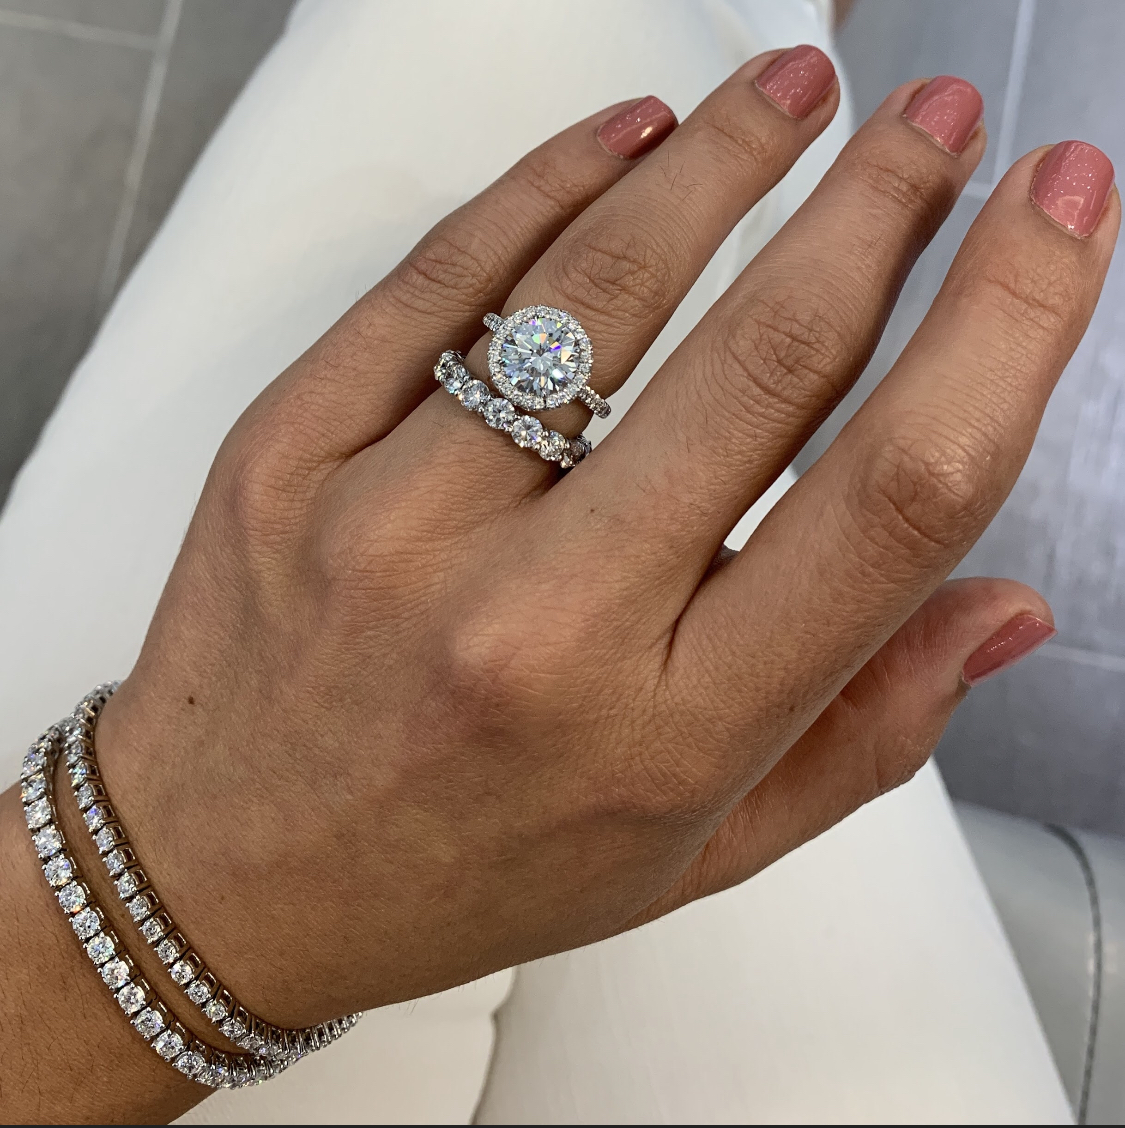 Best Engagement Rings For Hands On Careers Jewelry Blog Engagement Rings Diamonds Lauren B